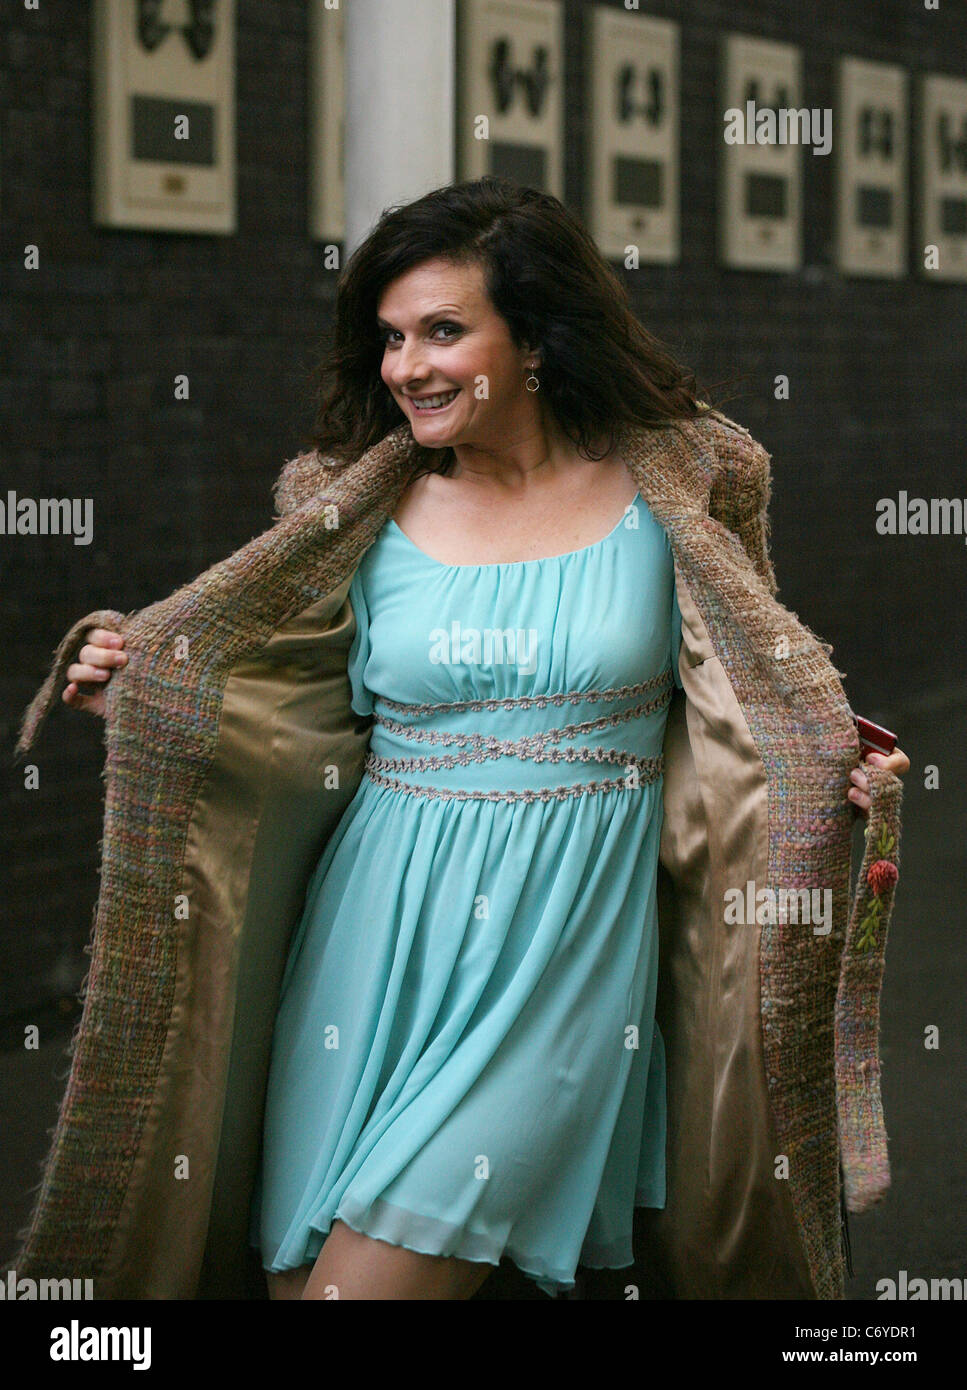 Sian Reeves London Stock Photos & Sian Reeves London Stock Images ...